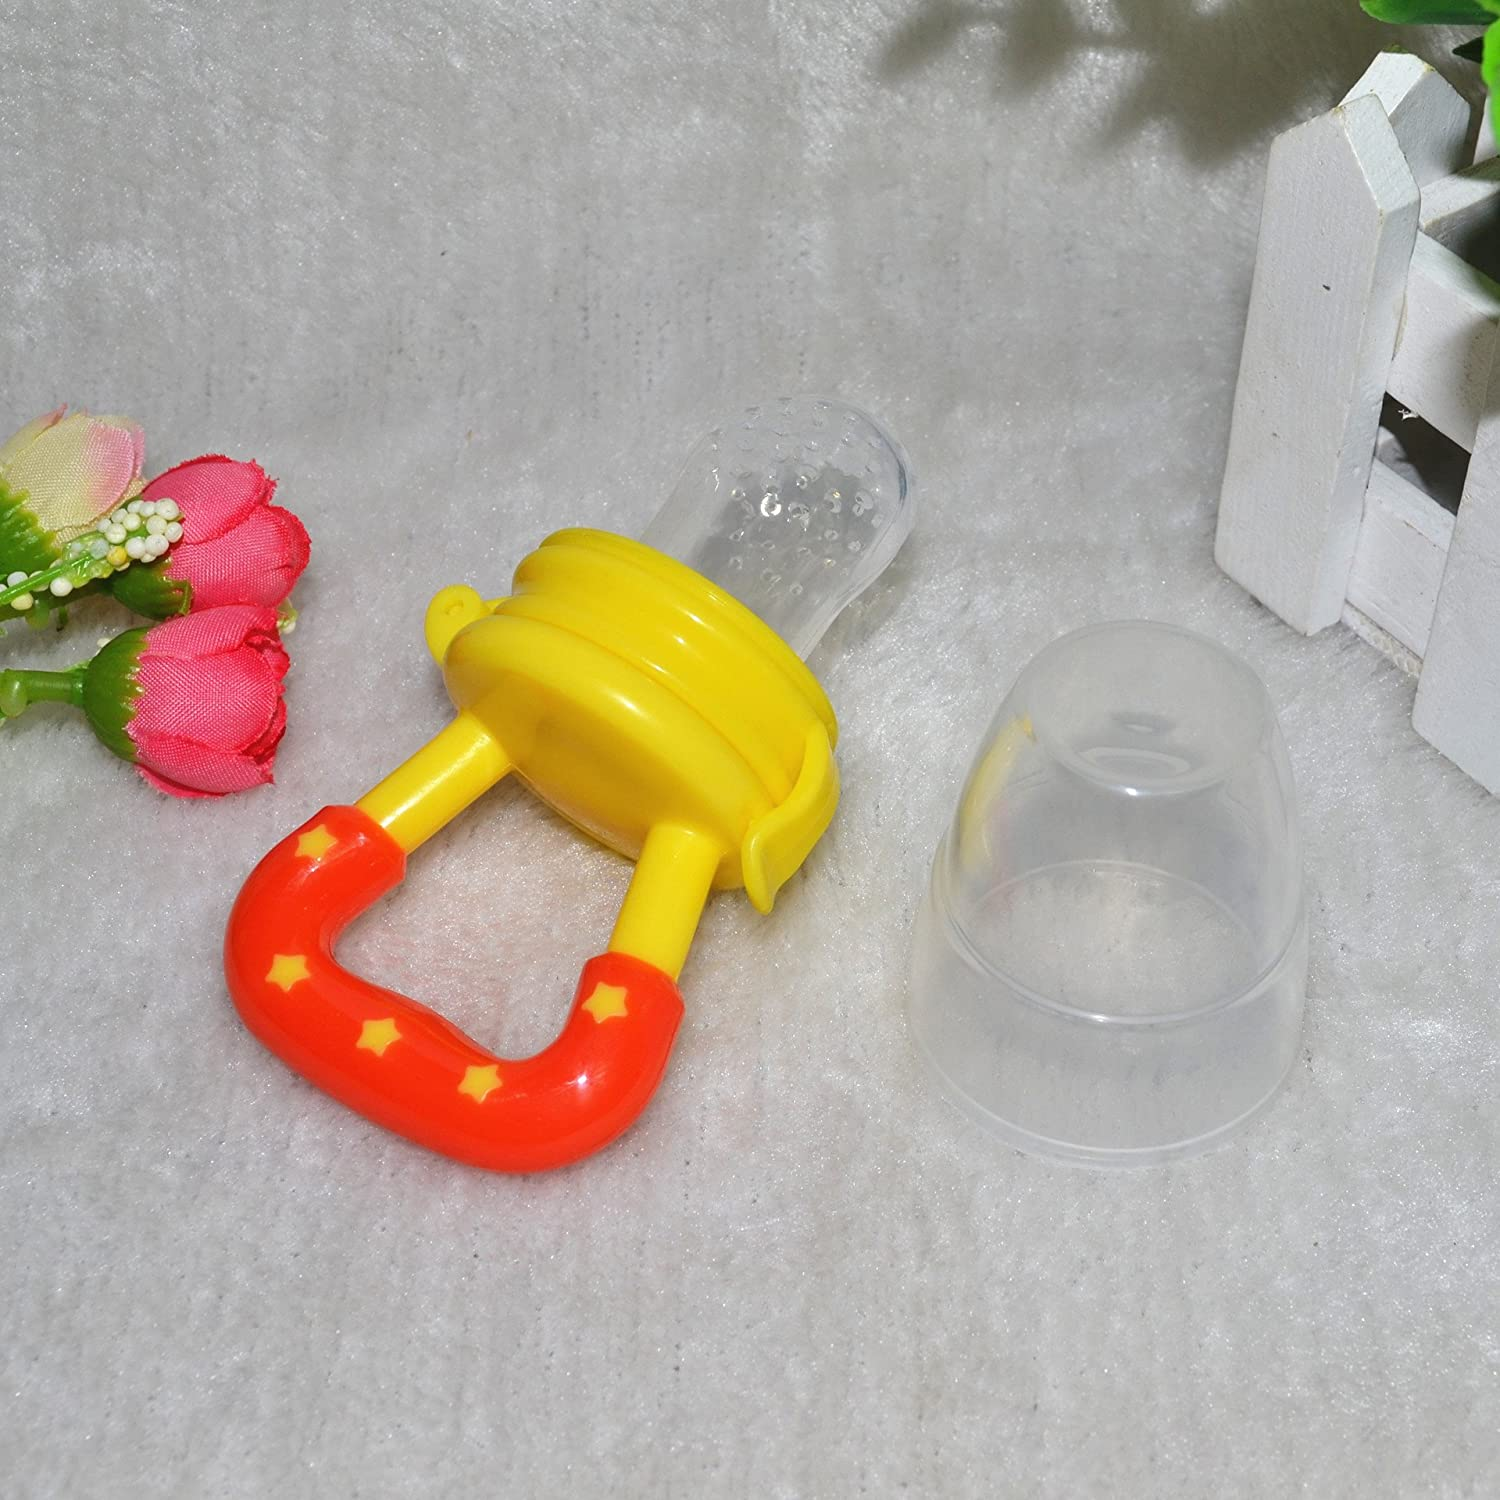 14a841843 Amazon.com   Baby Food Feeder Silicone Dummies Pacifier Soother ...